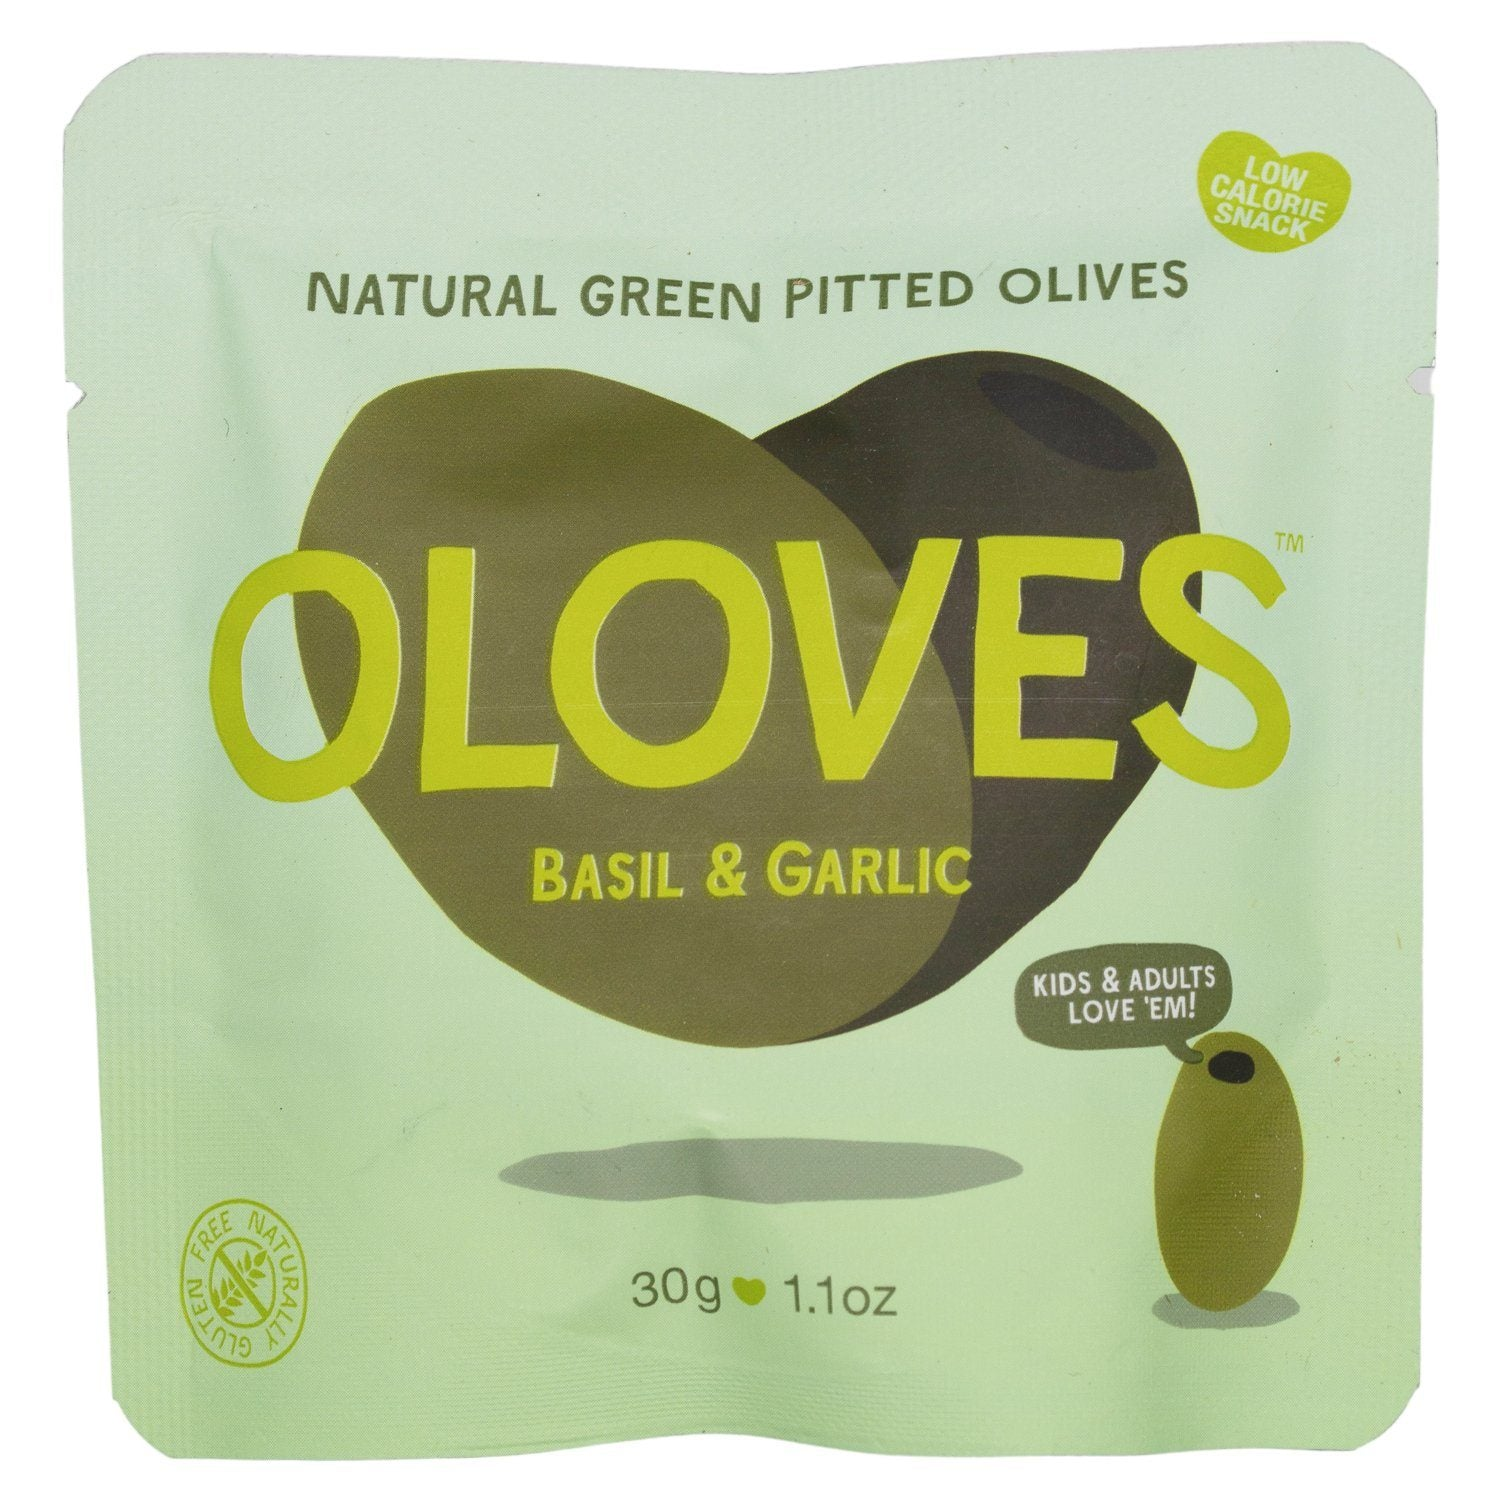 OLOVES Natural Whole Pitted Olives Elma Farms Basil & Garlic 1.1 Ounce